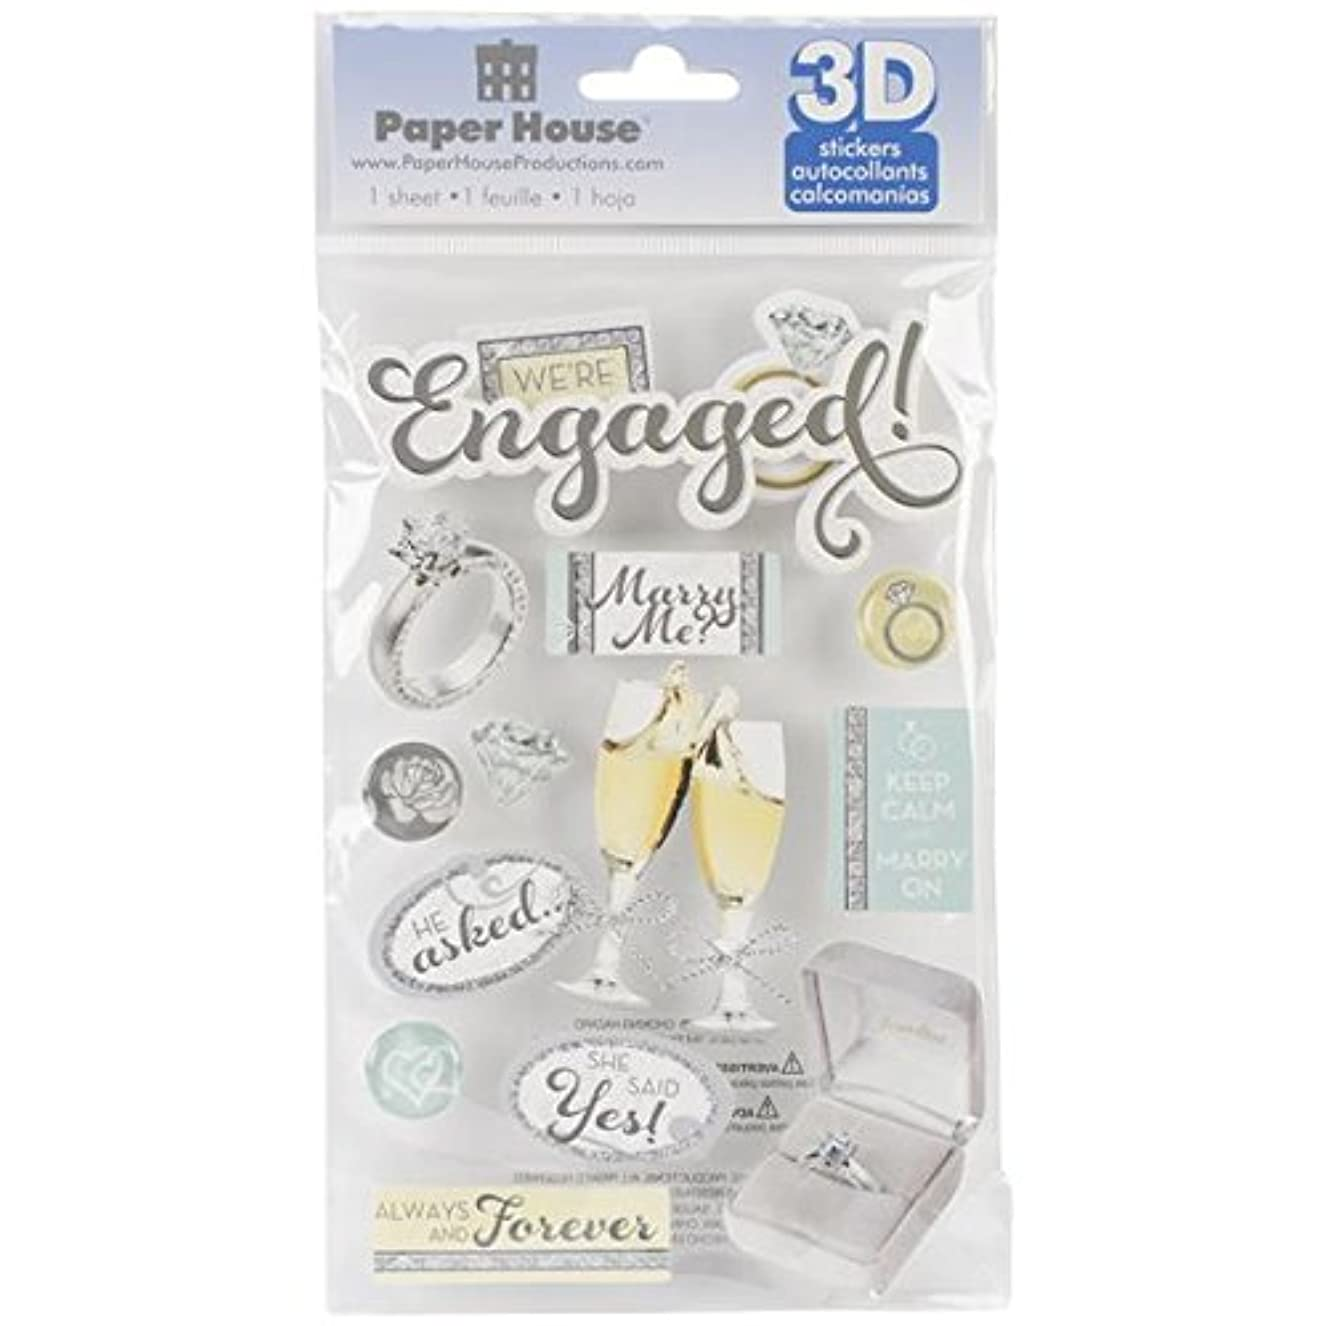 Paper House Productions STDM-0197E 3D Cardstock Stickers, Engaged pmpjqpwcym6382